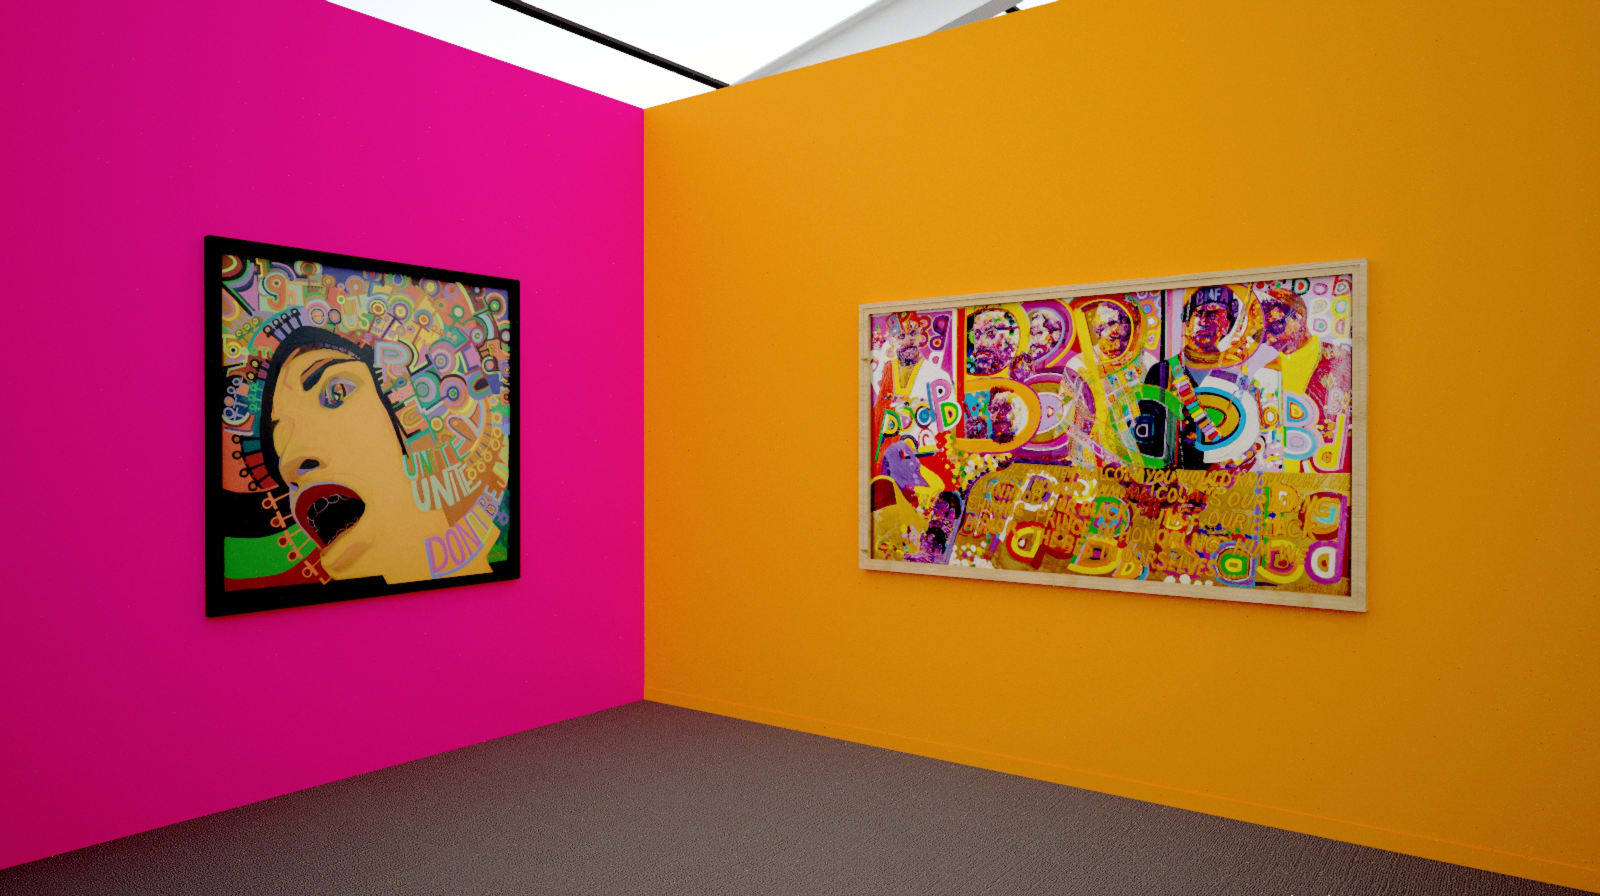 Works by Gerald Williams and Wadsworth Jarrell at Frieze New York (Installation View), 2020, Kavi Gupta